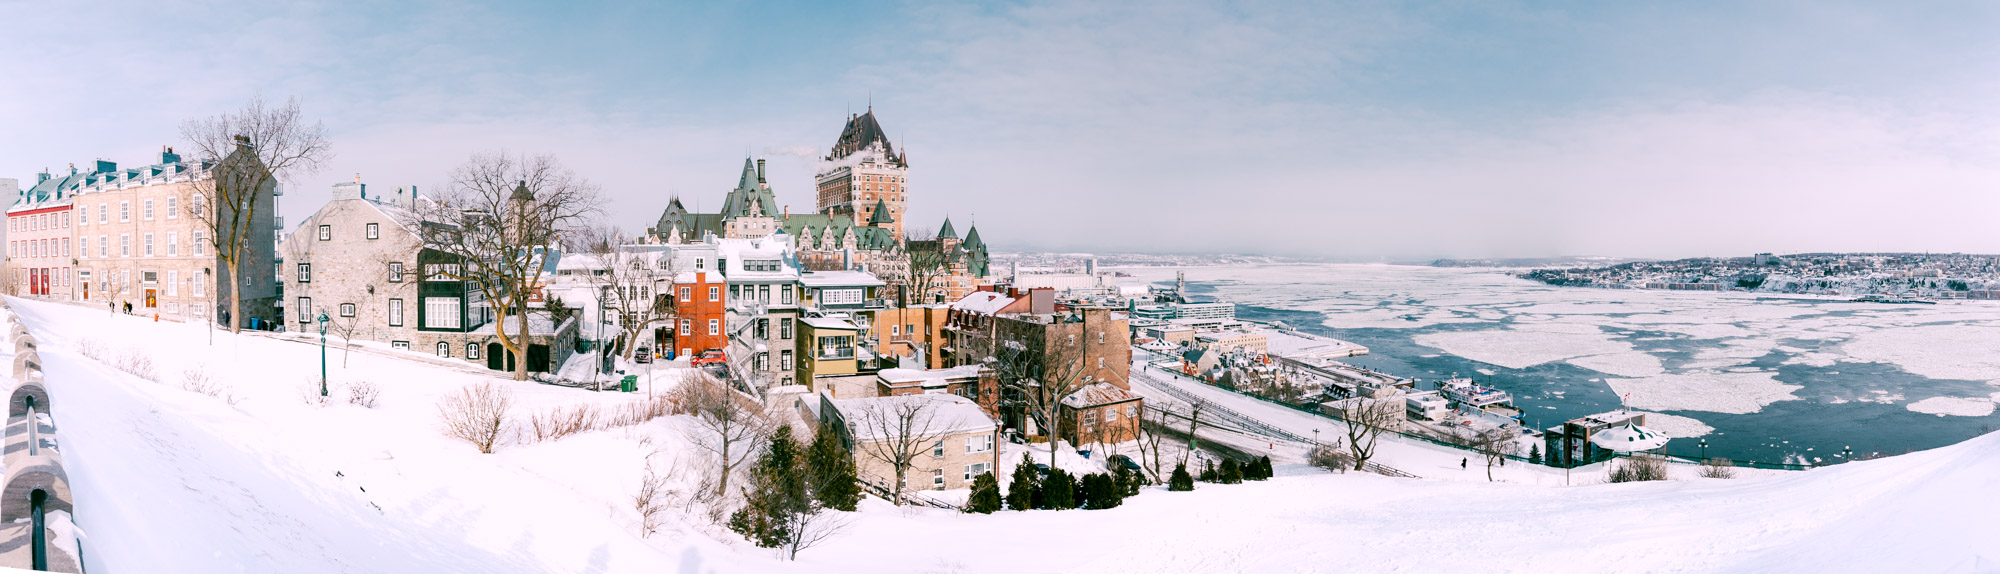 jeffontheroad-quebec-city-old-quebec-42.JPG